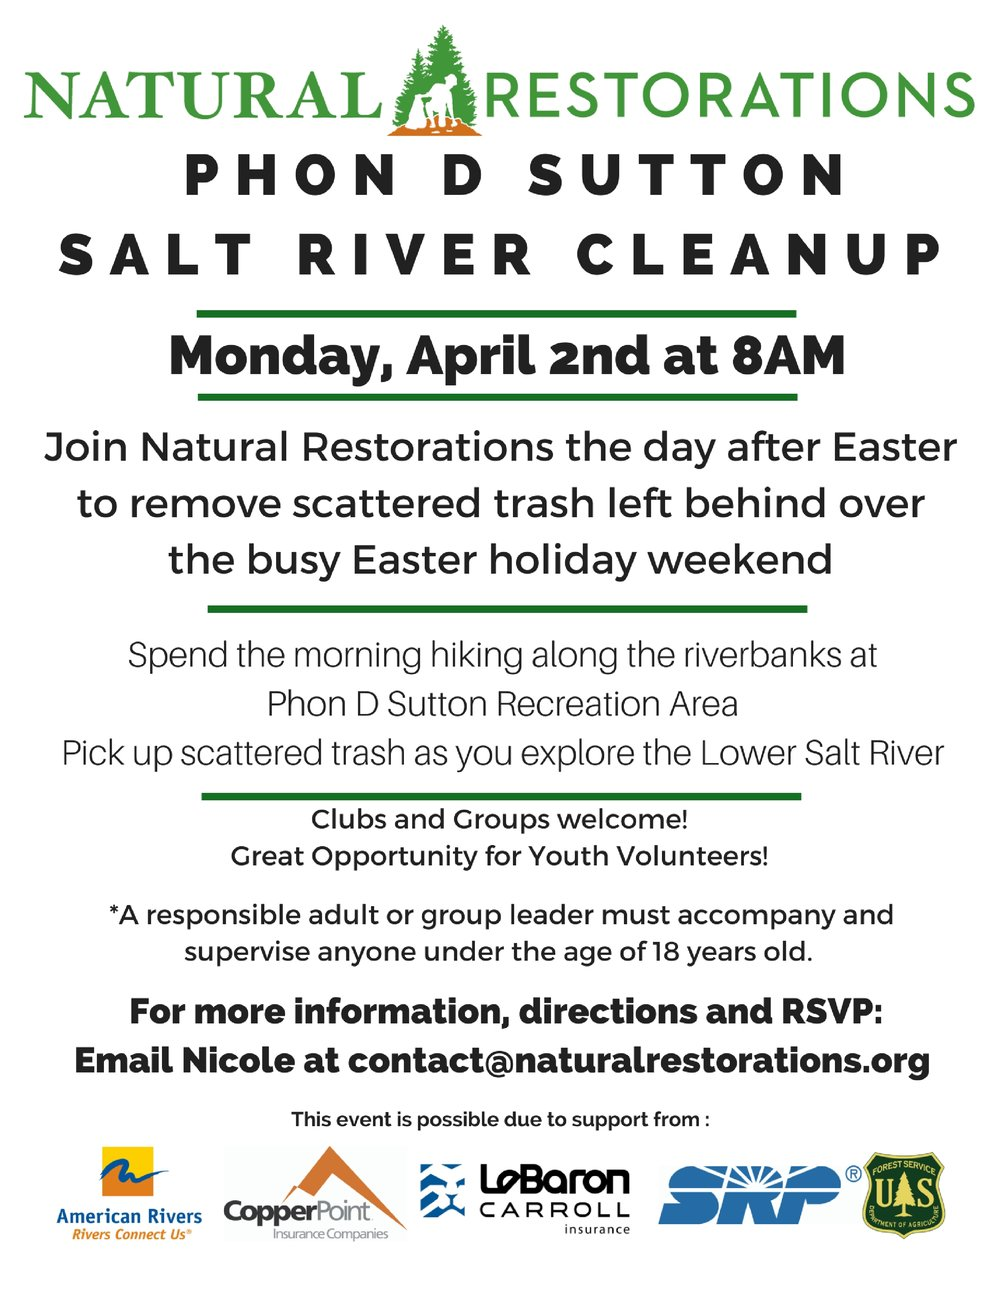 04.02.18 Salt River Cleanup.jpg